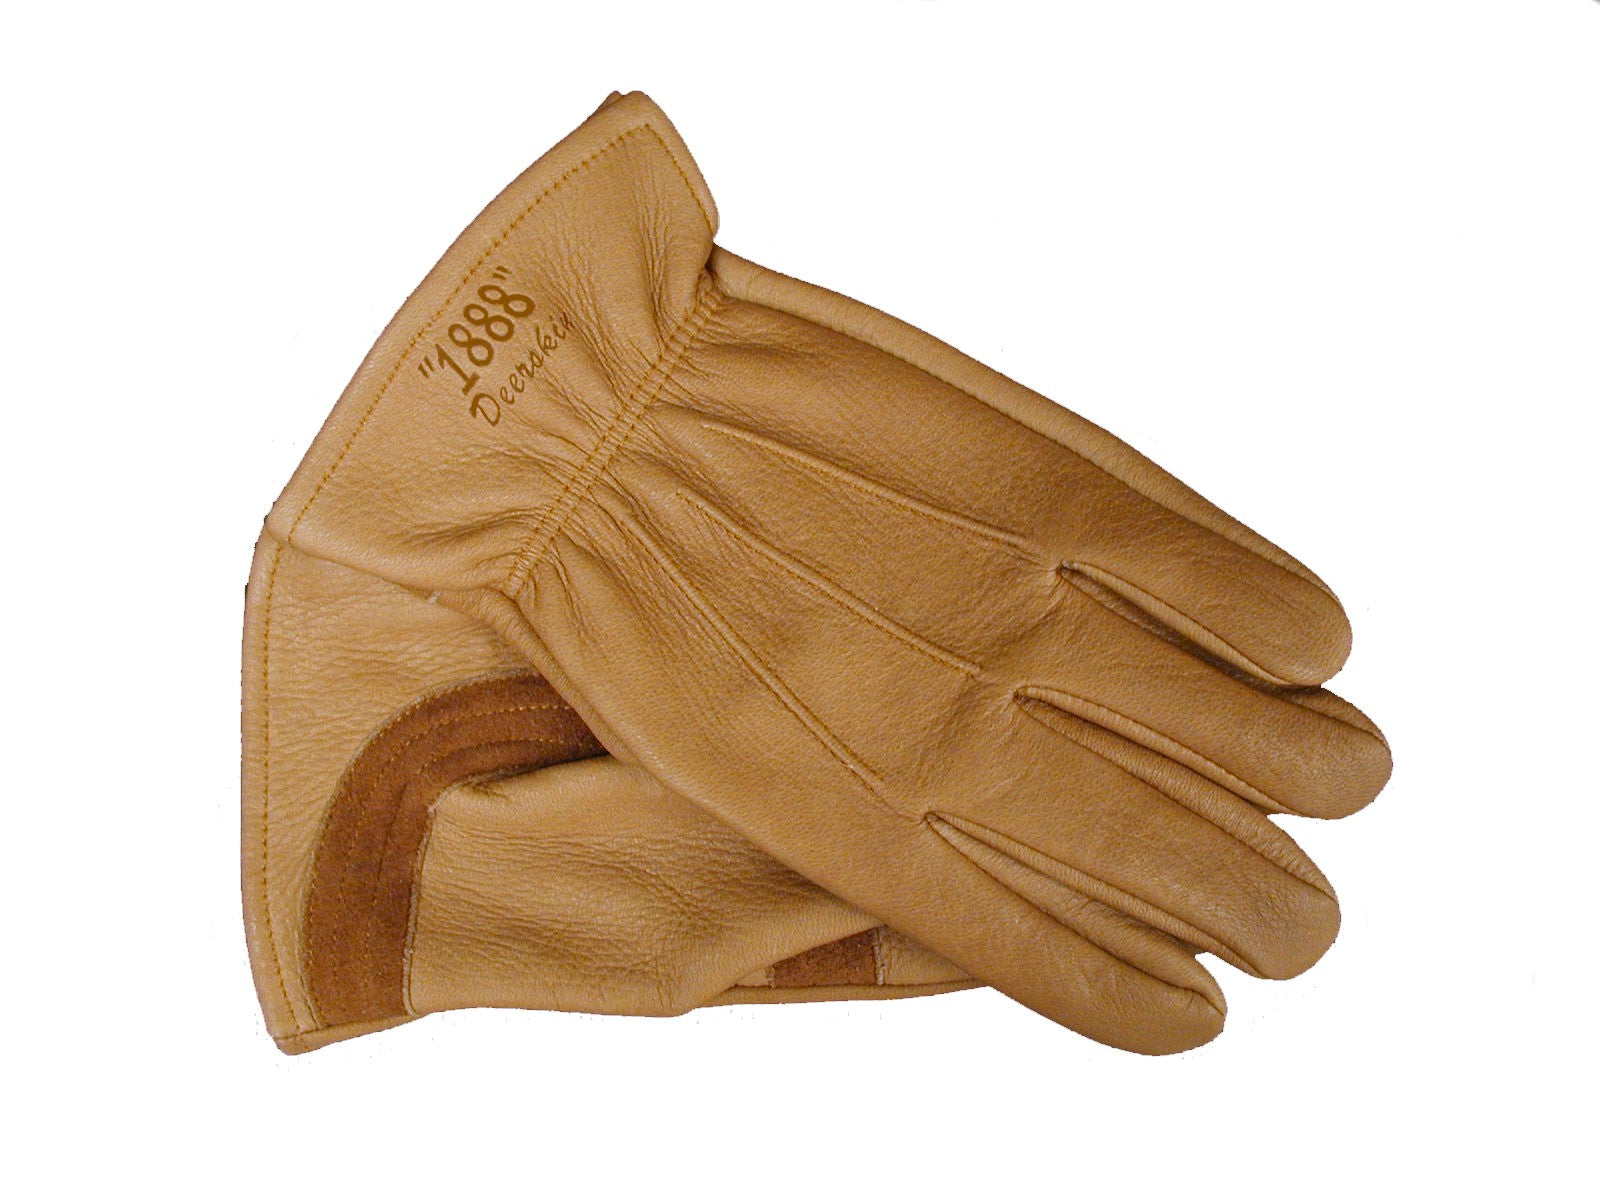 Tuff Mate Premium Grain Deerskin Gloves 1888 Western Brown